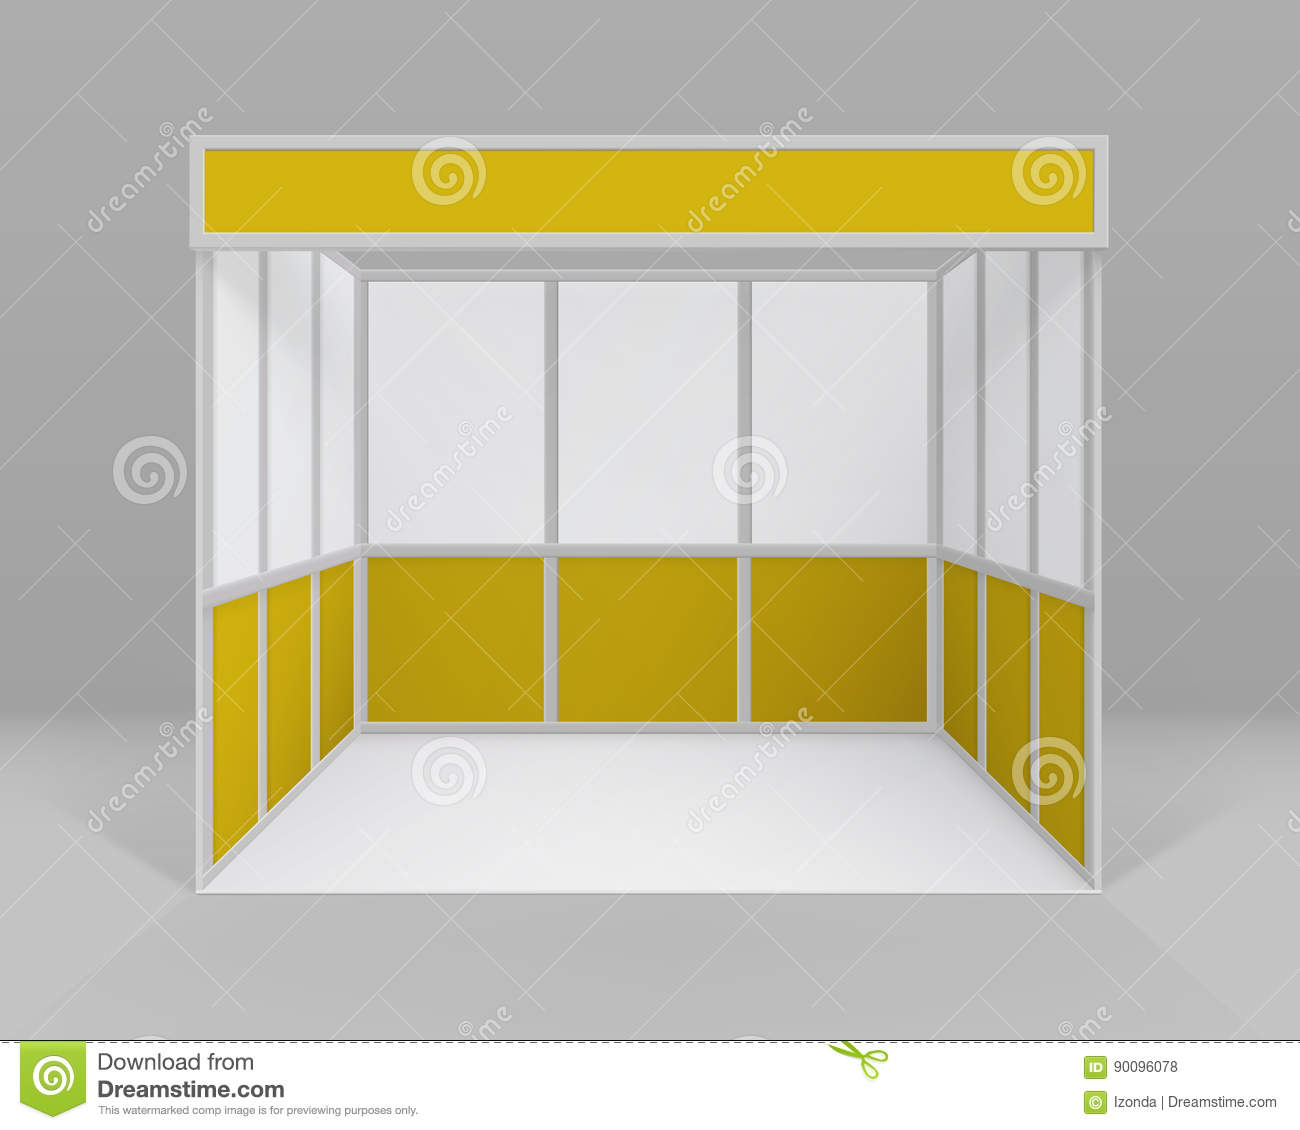 Blank Exhibition Stand Vector : Blank white trade exhibition stand vector illustration